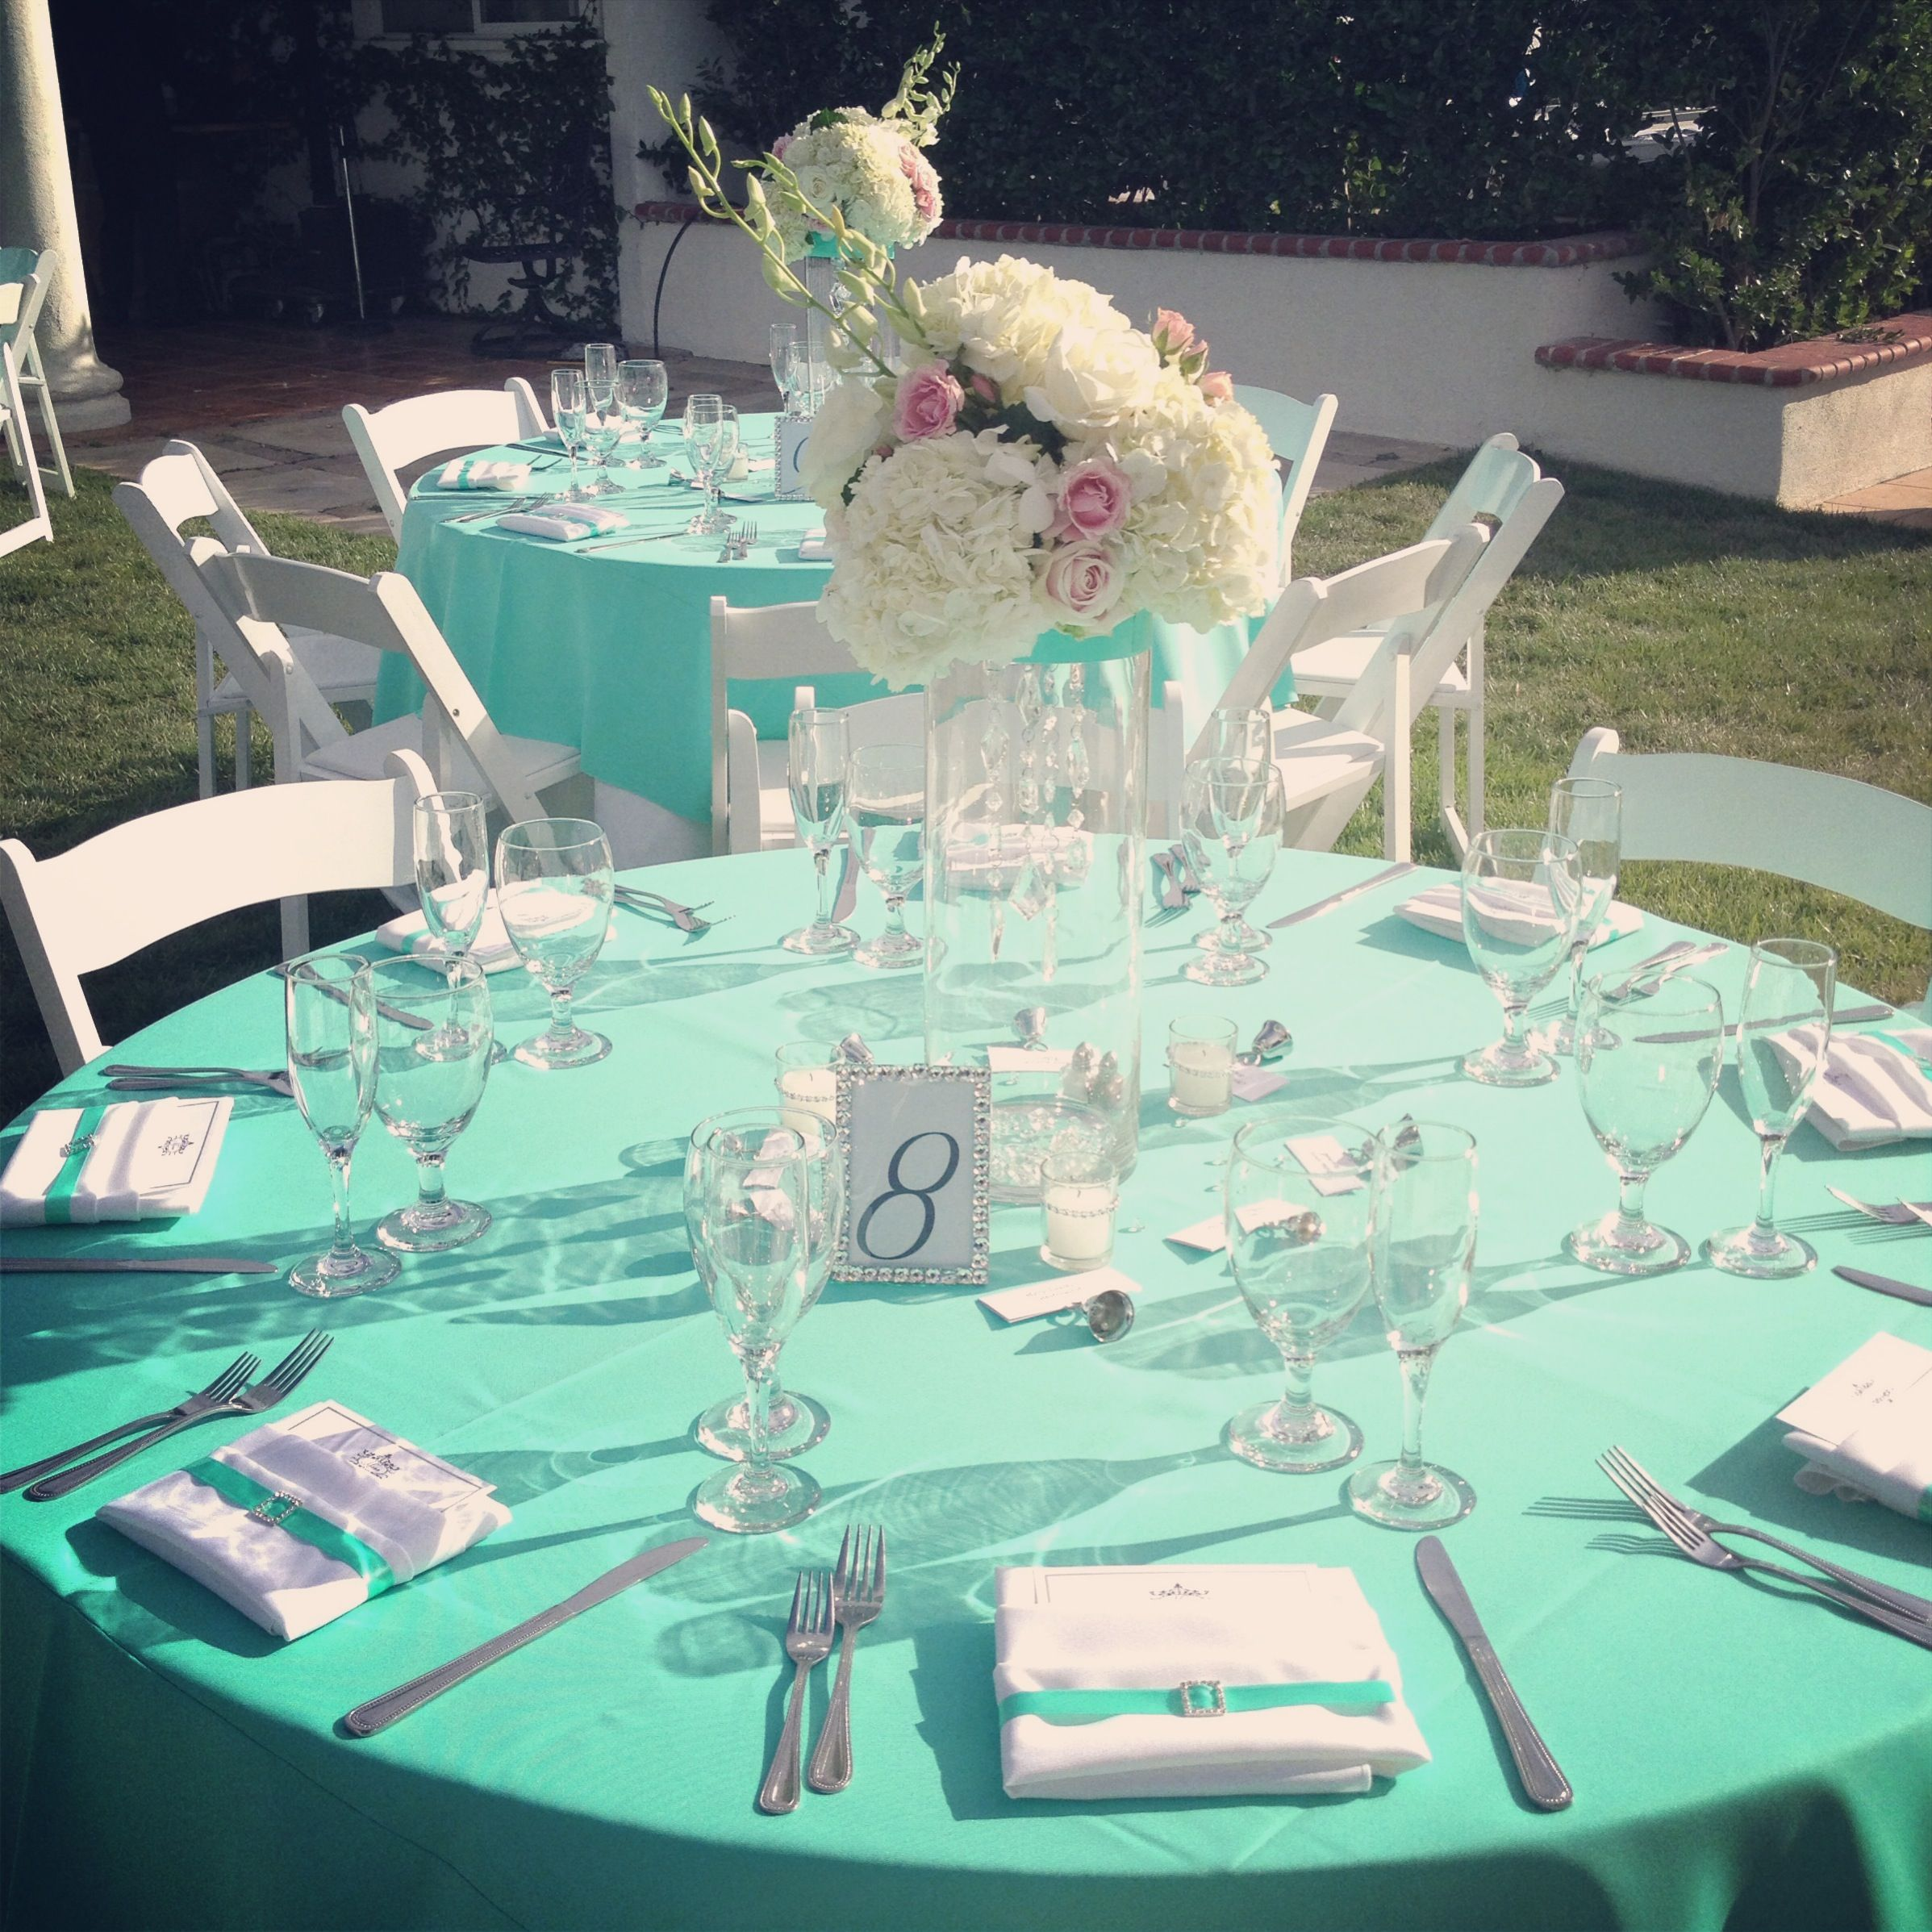 Tiffany Blue Wedding Decoration Ideas: Tiffany Blue Wedding Table Settings & Tiffany Blue Table